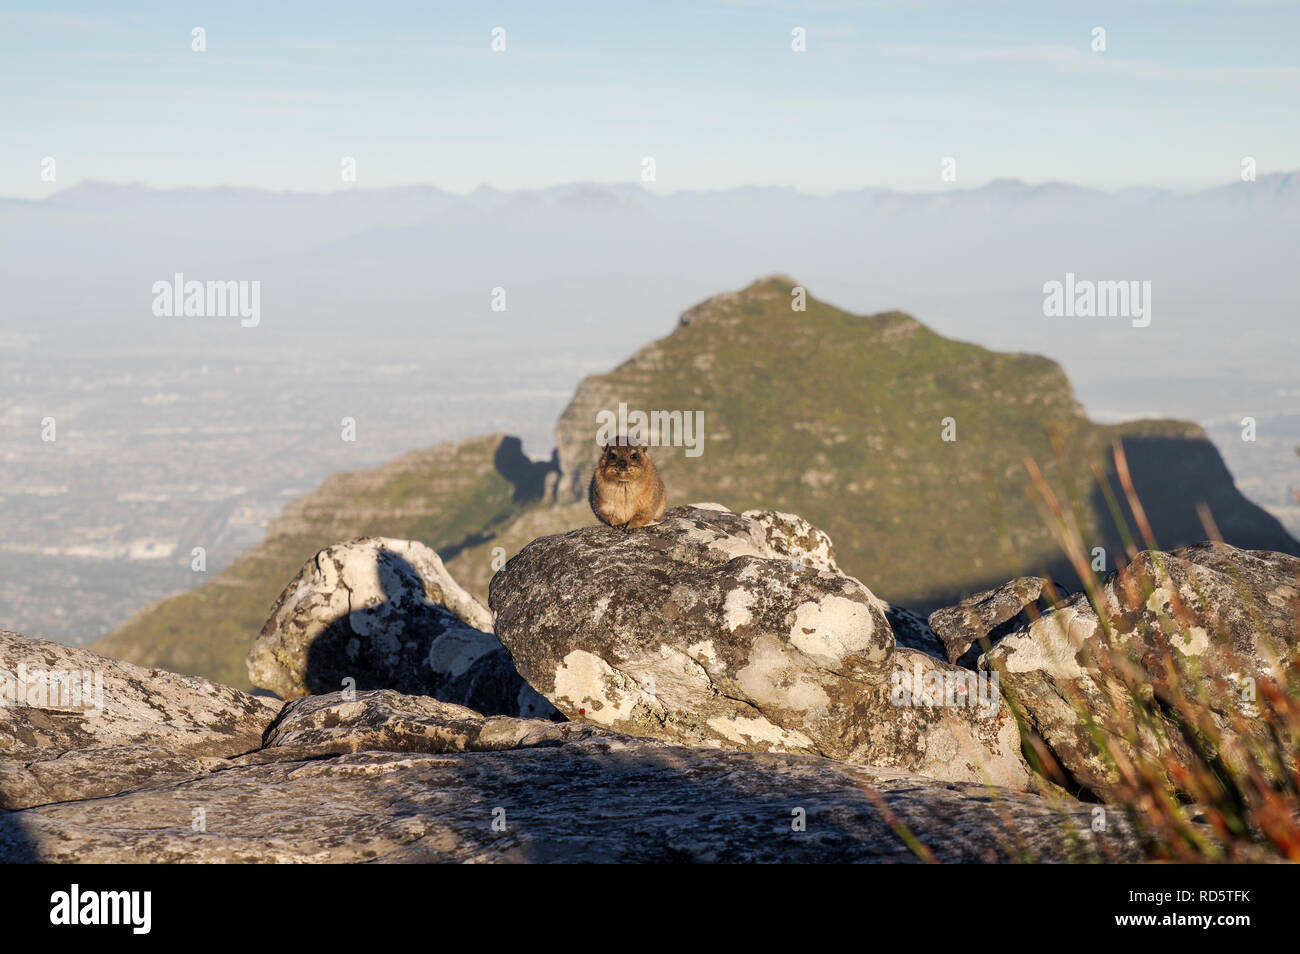 Rock Hyrax posing in front of Devil's Peak on the top of Table Mountain in Cape Town, South Africa - Stock Image